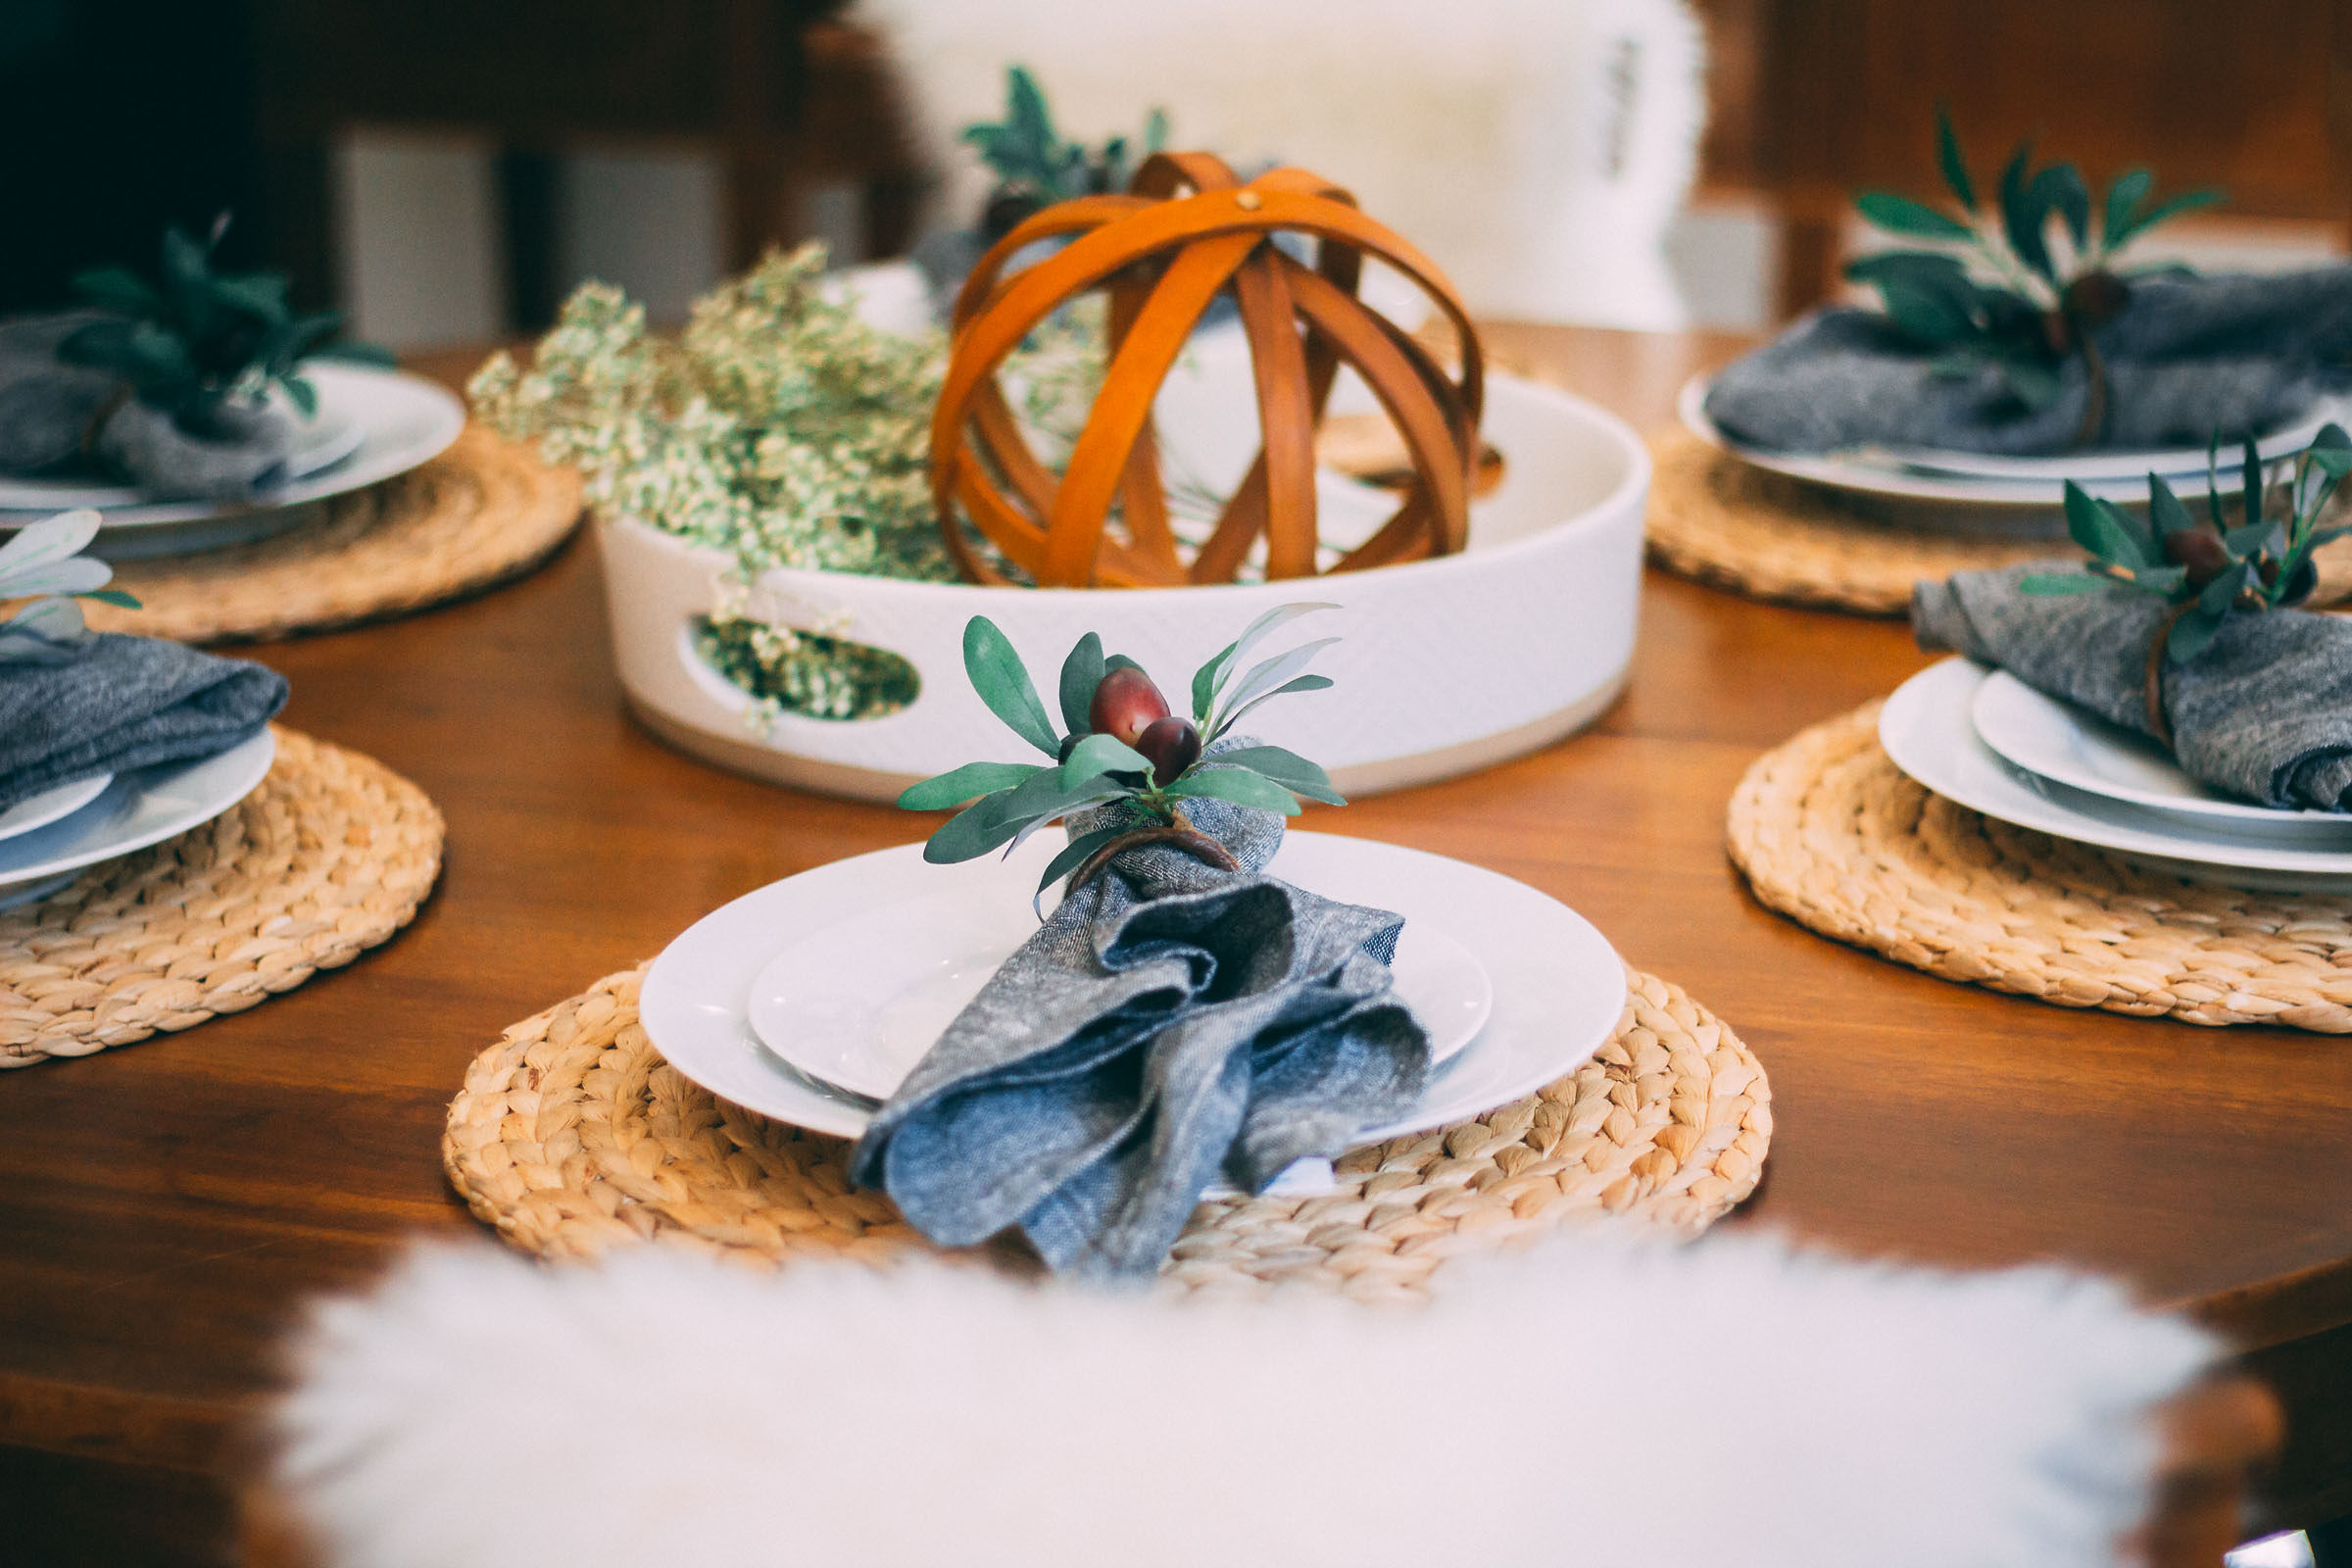 Table set up with center piece, braided basket chargers, grey napkins, dark wood table, white fur chair accent.